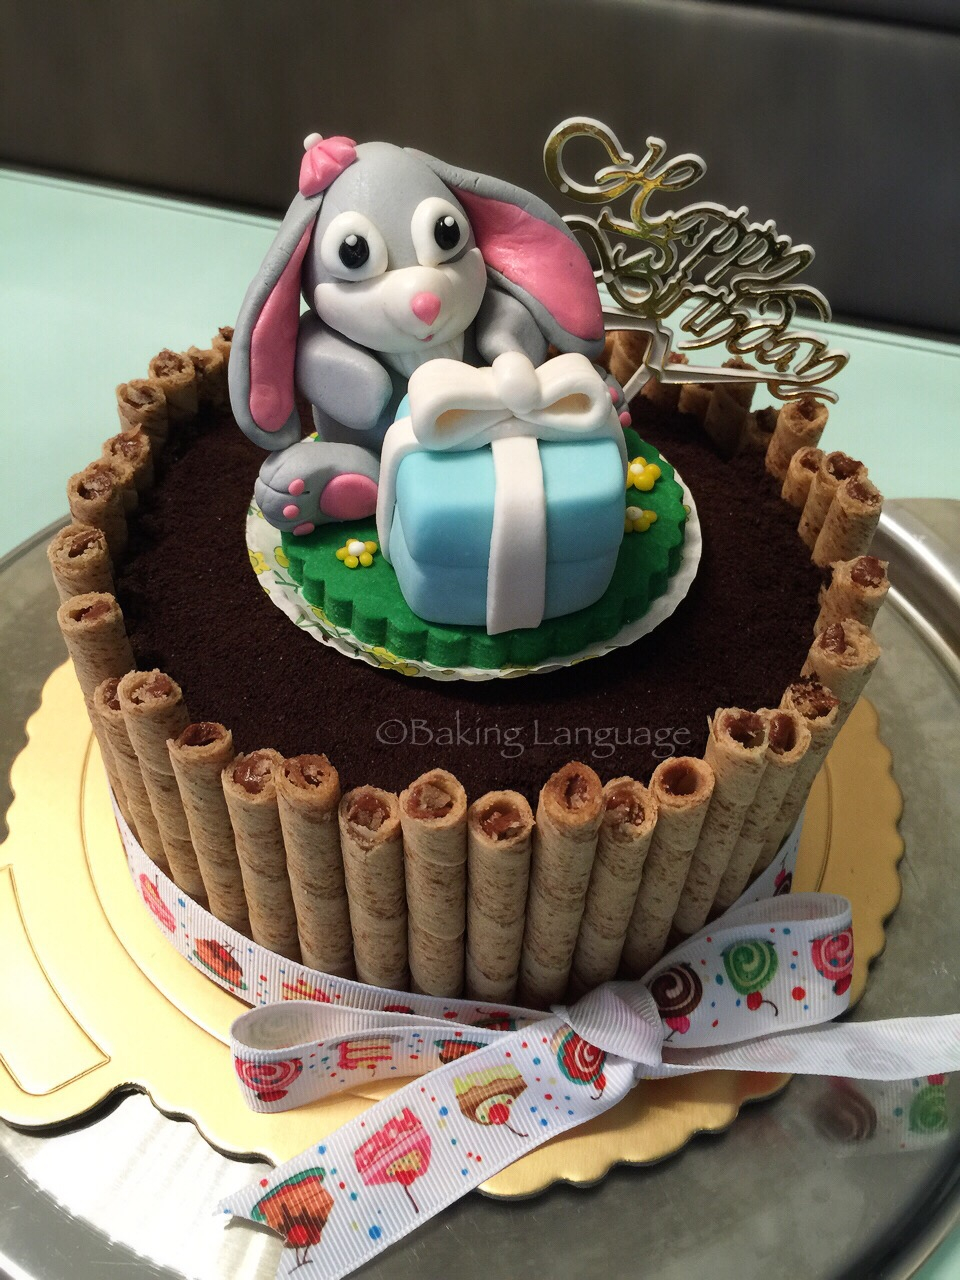 Bunny Birthday Cake Bunny Cookies Cream Chocolate Birthday Cake Baking Language